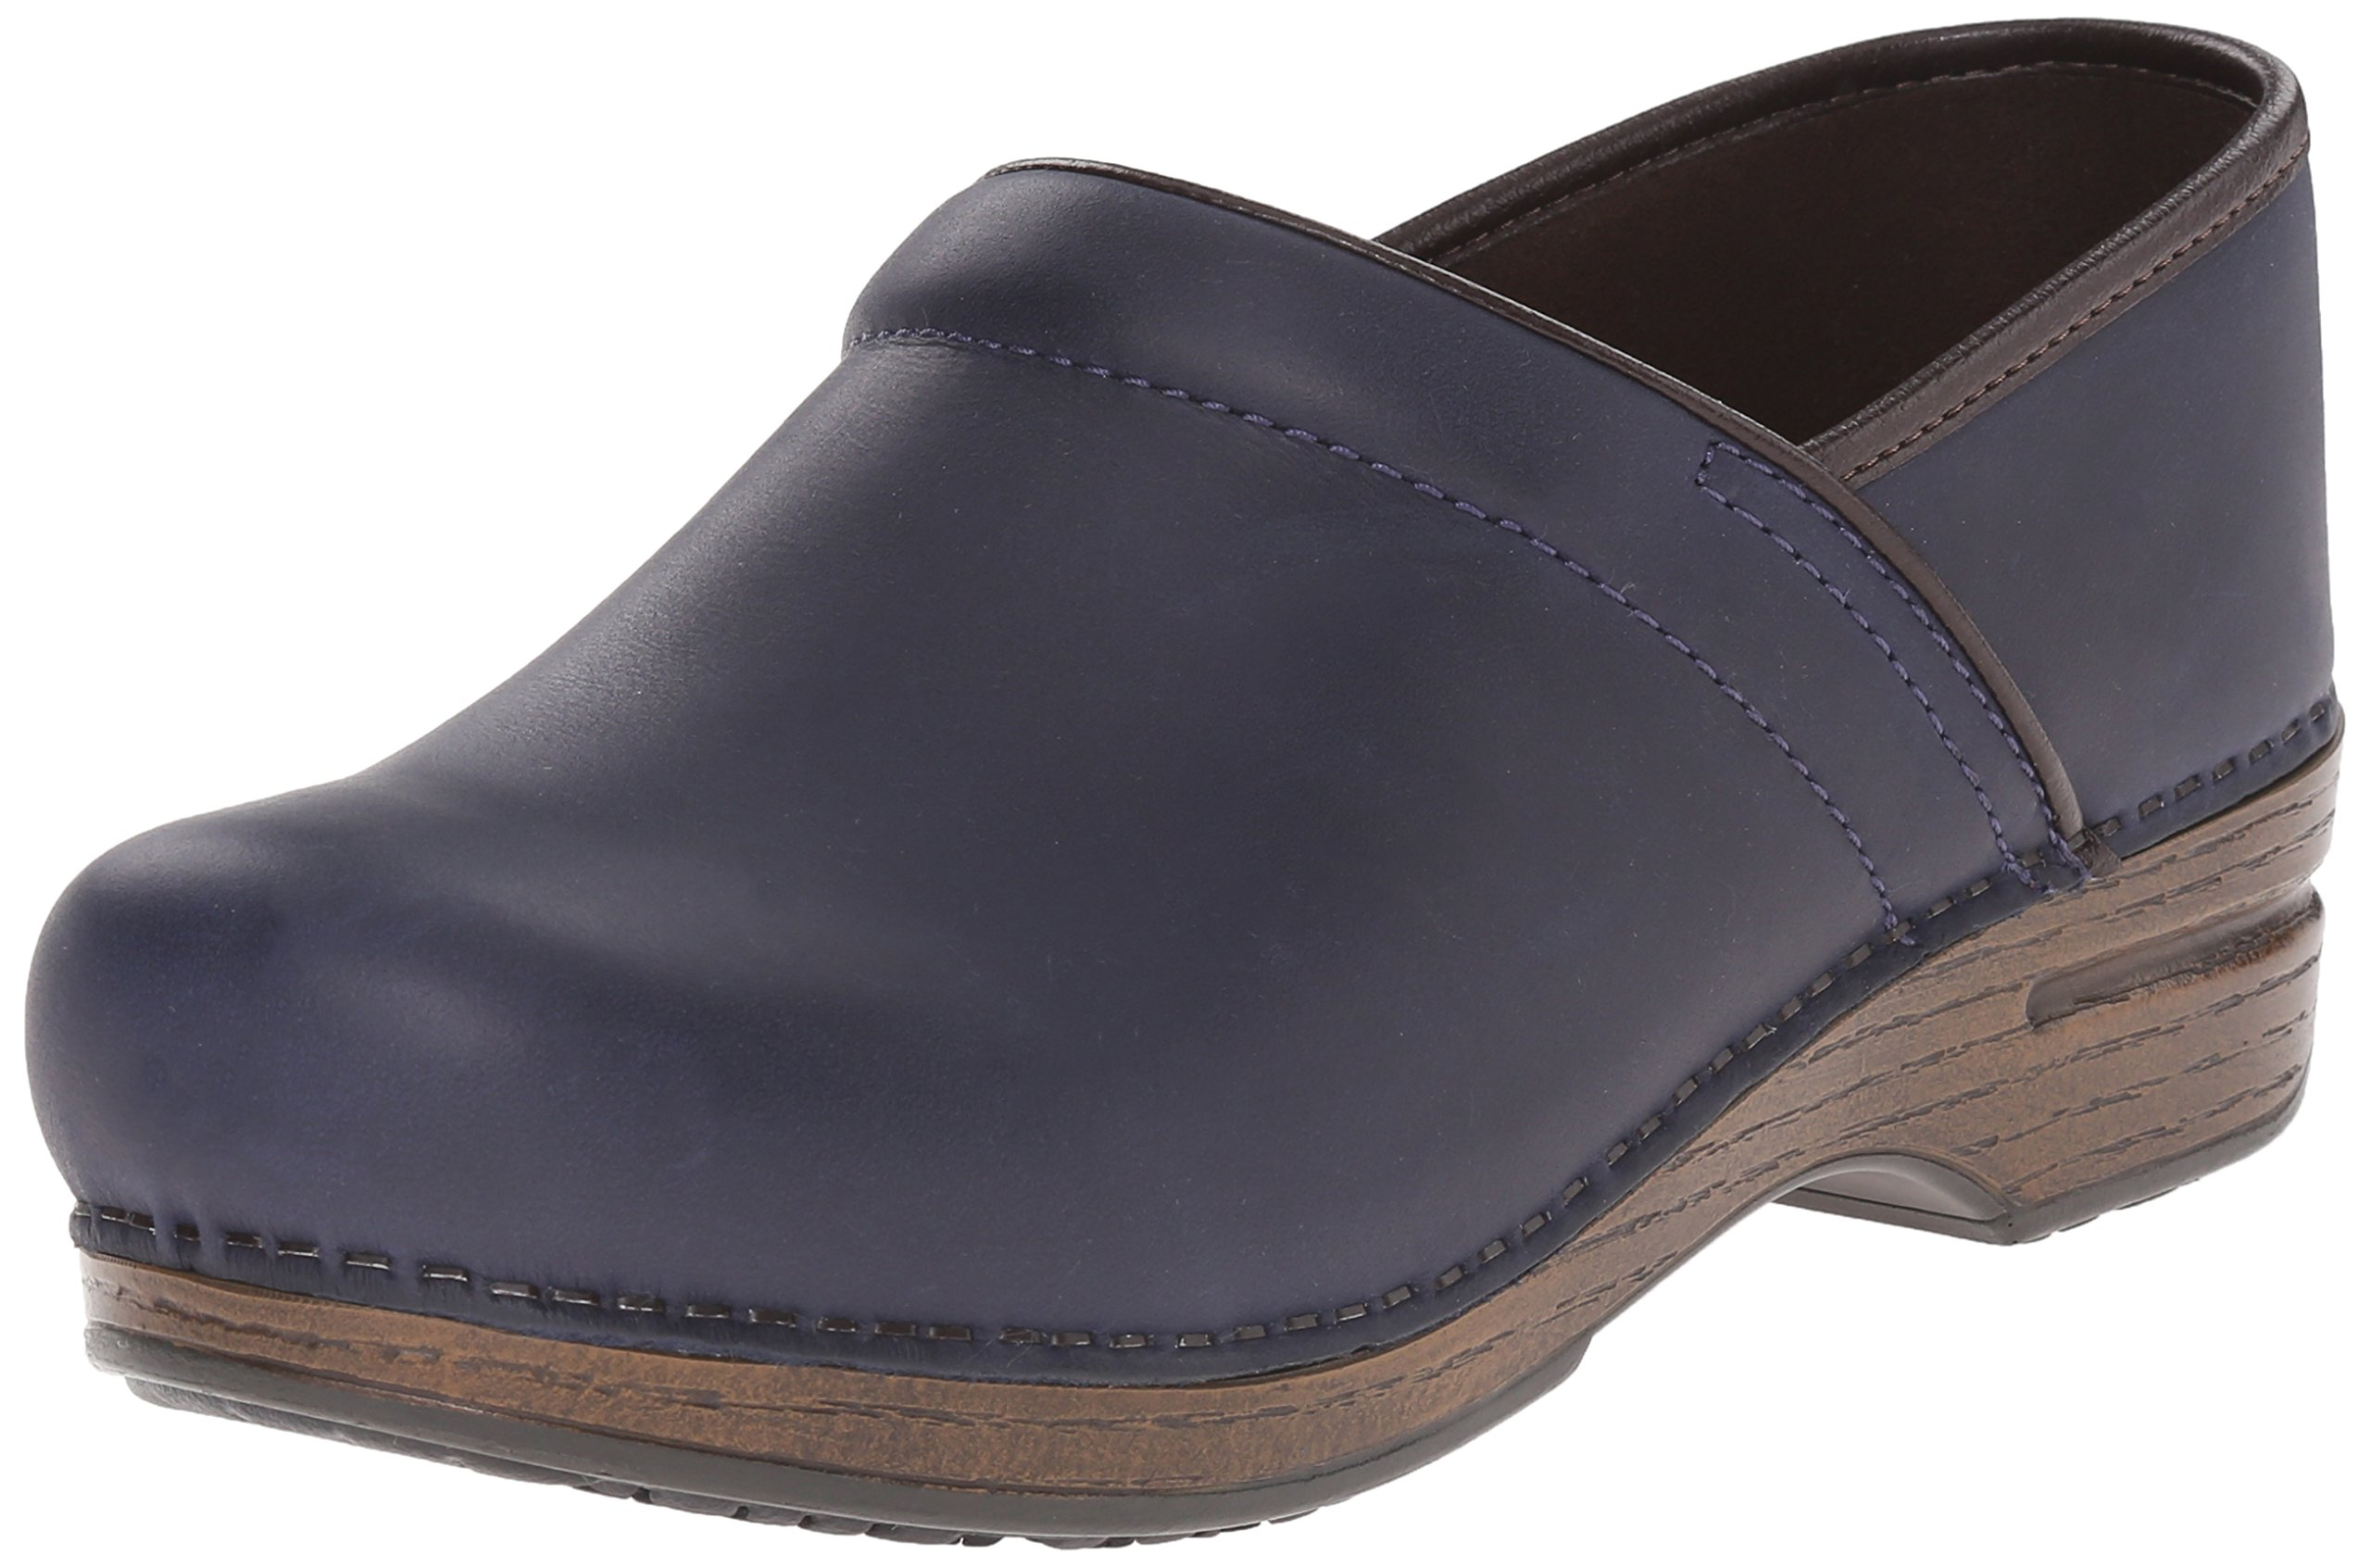 Dansko Women's Pro XP Navy Oiled Mule, 39 EU/8.5-9 M US